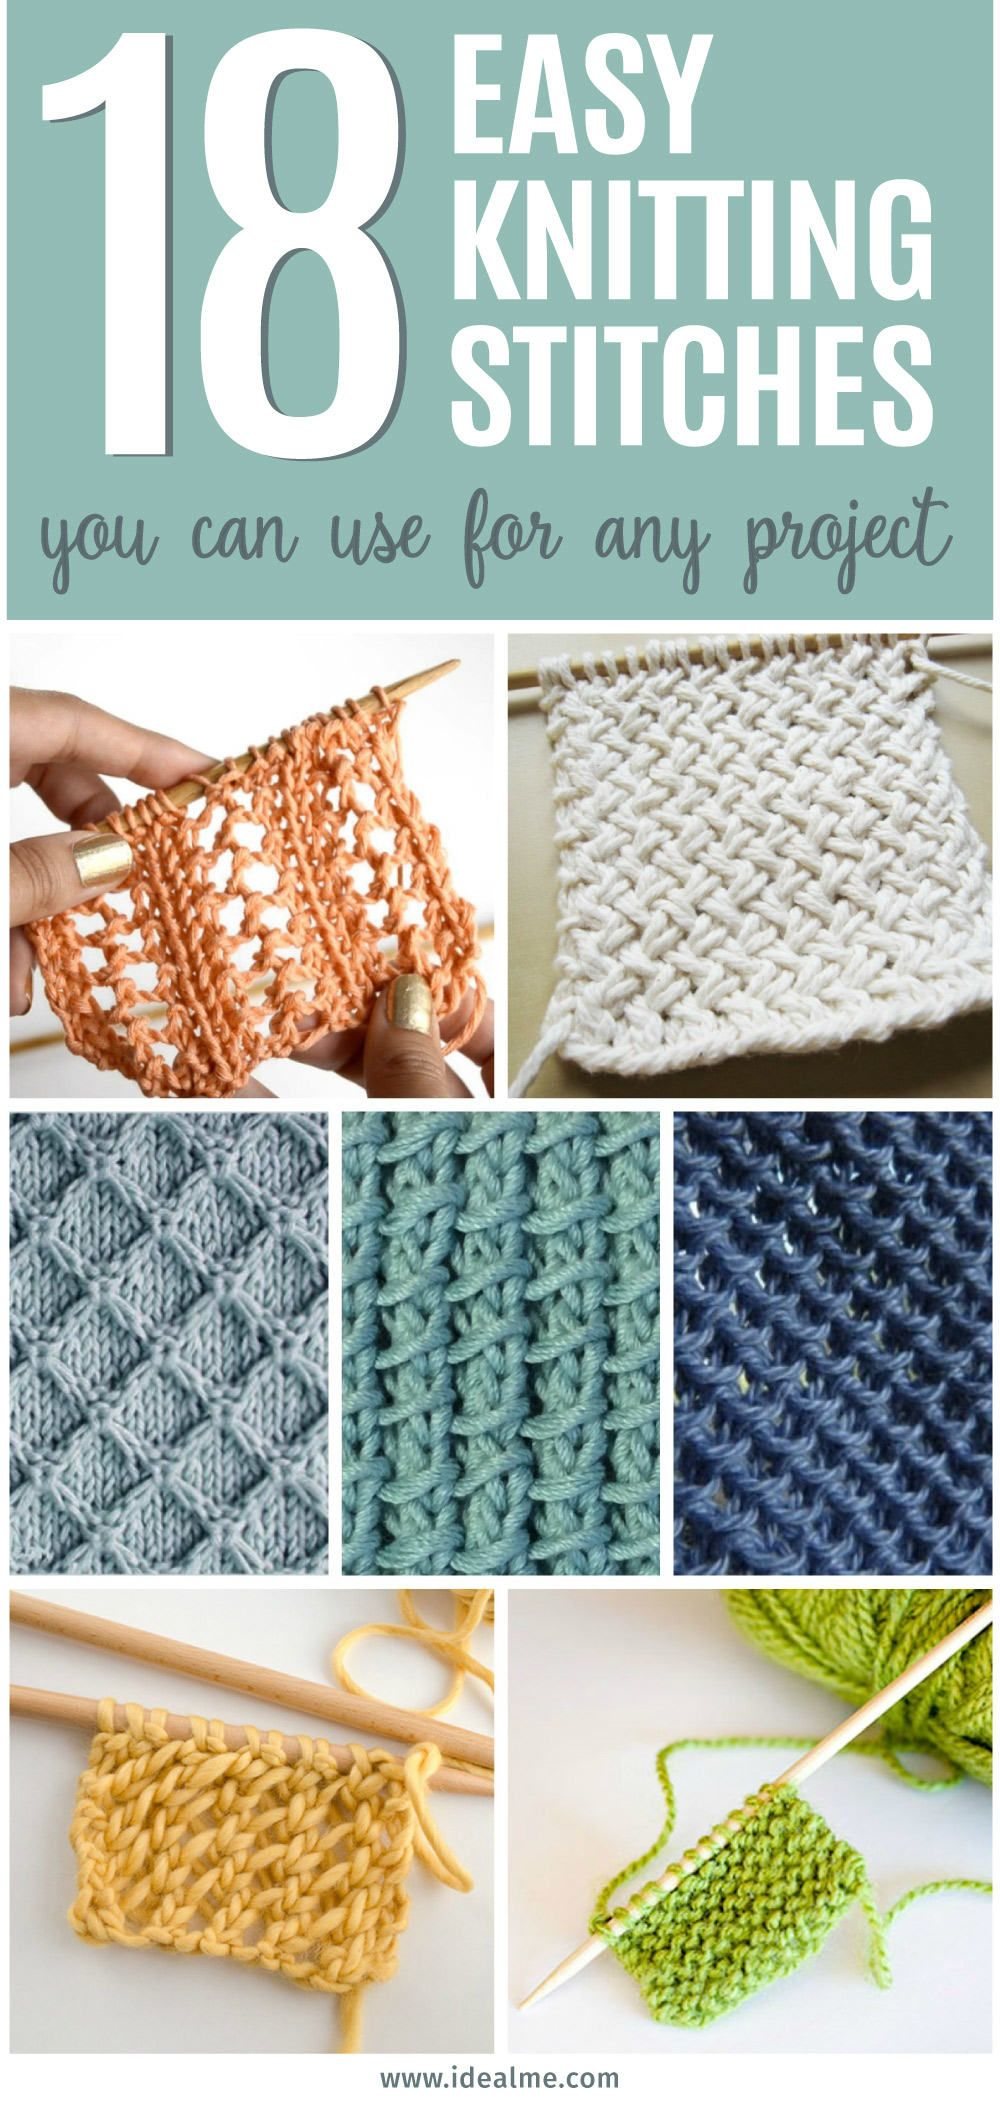 18 Easy Knitting Stitches You Can Use for Any Project – Ideal Me